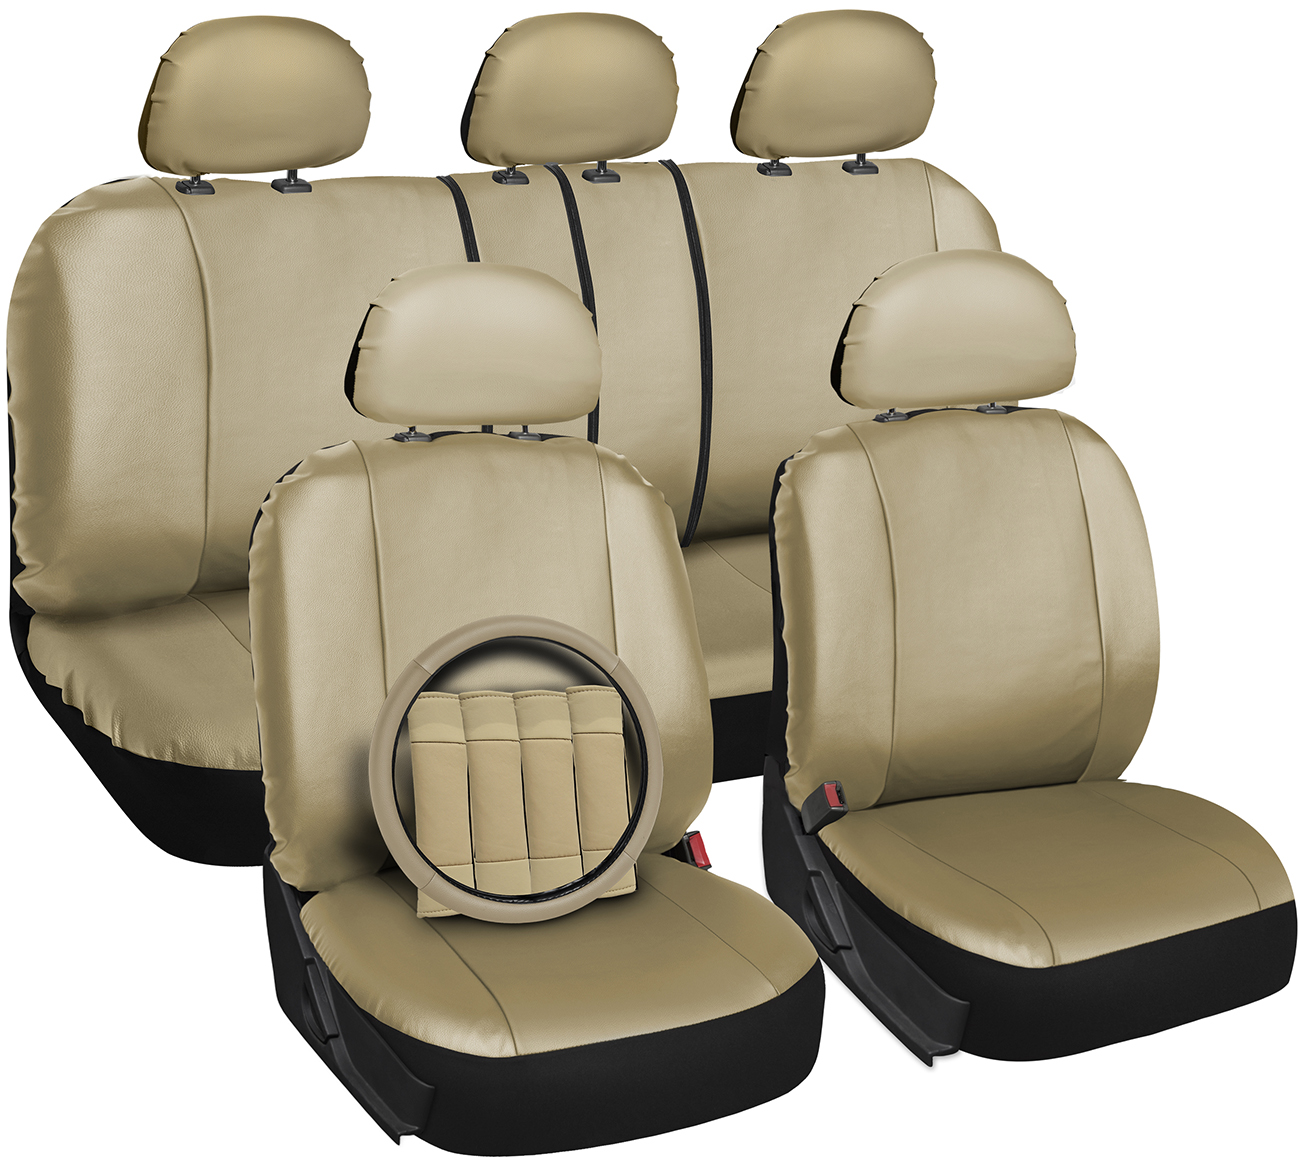 faux leather car seat covers beige 17pc set w steering wheel belt pad head rests ebay. Black Bedroom Furniture Sets. Home Design Ideas